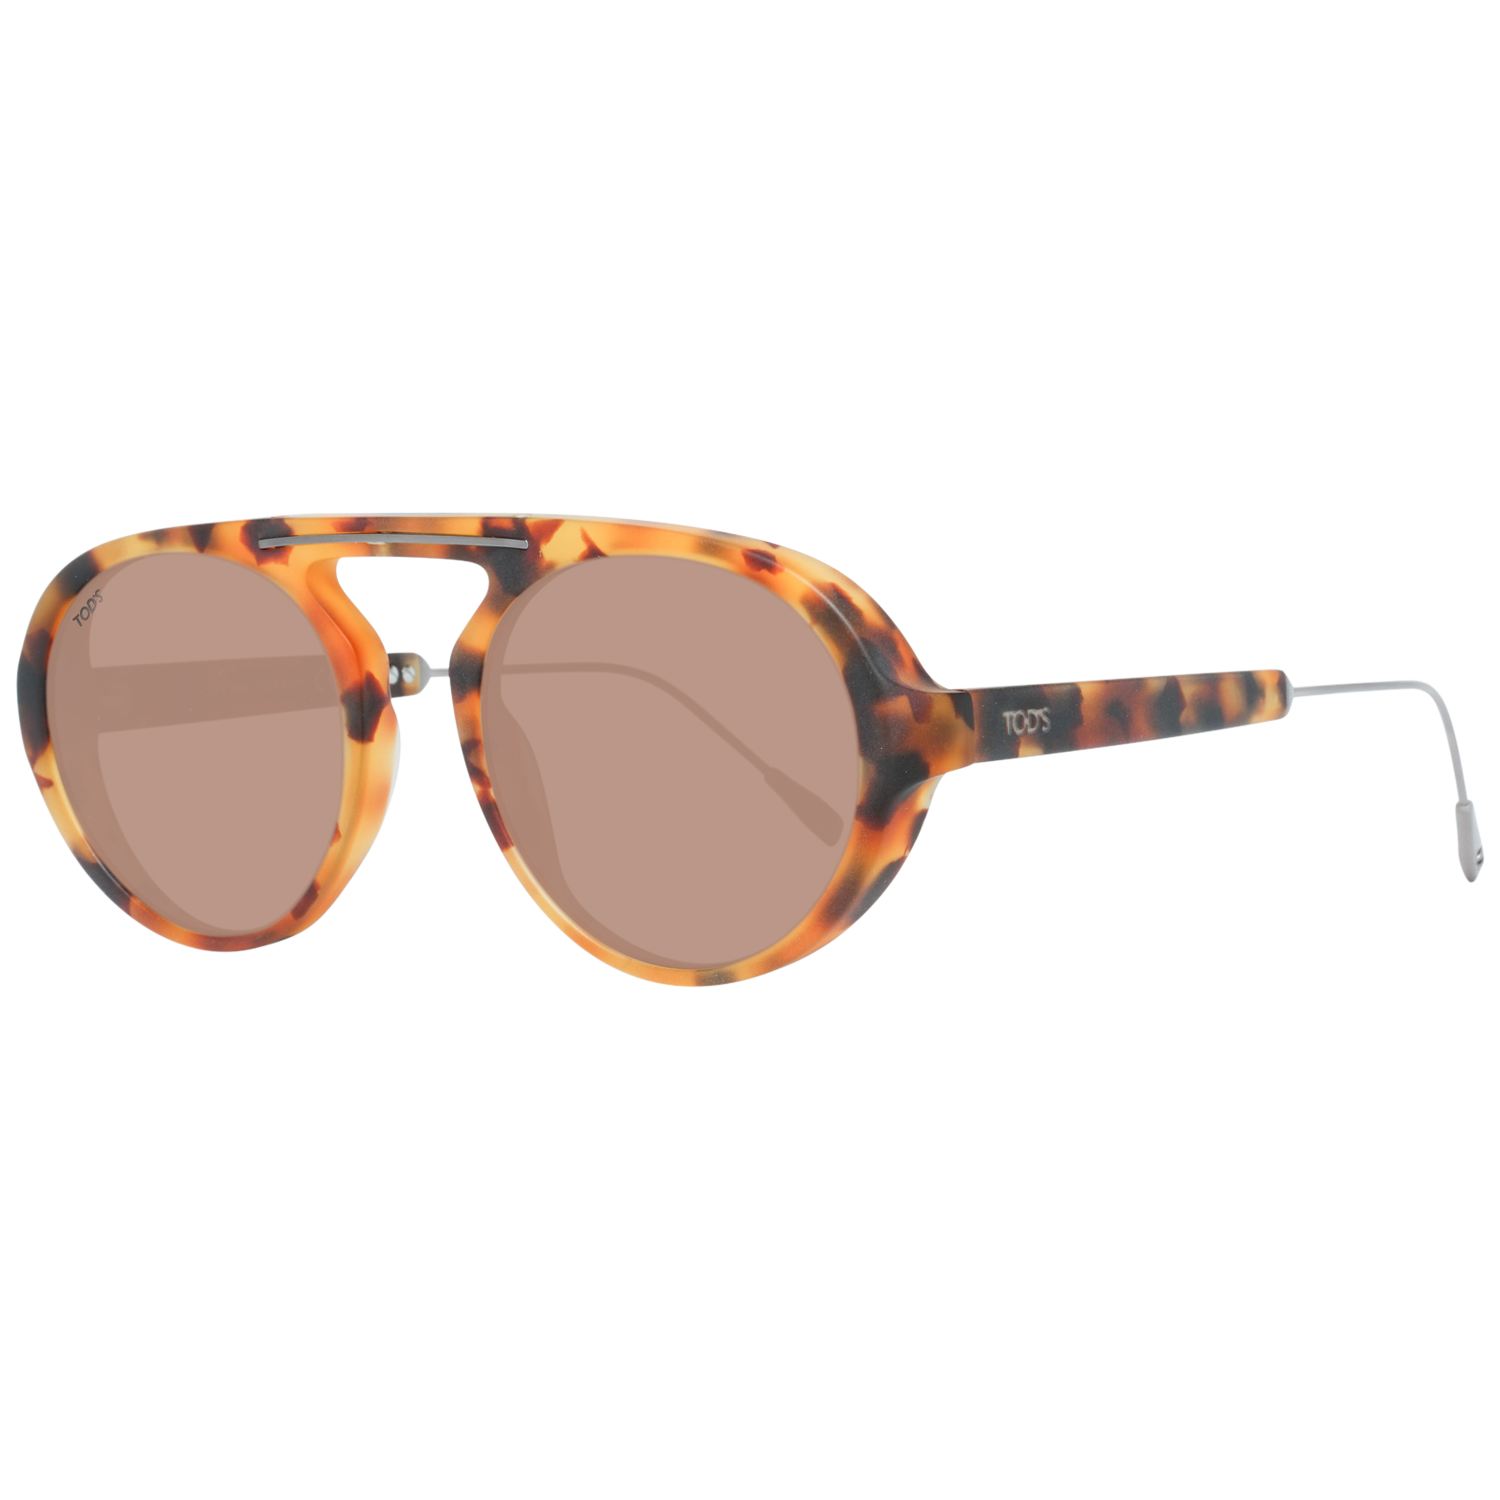 Tods Sunglasses TO0231 53J 51 Brown